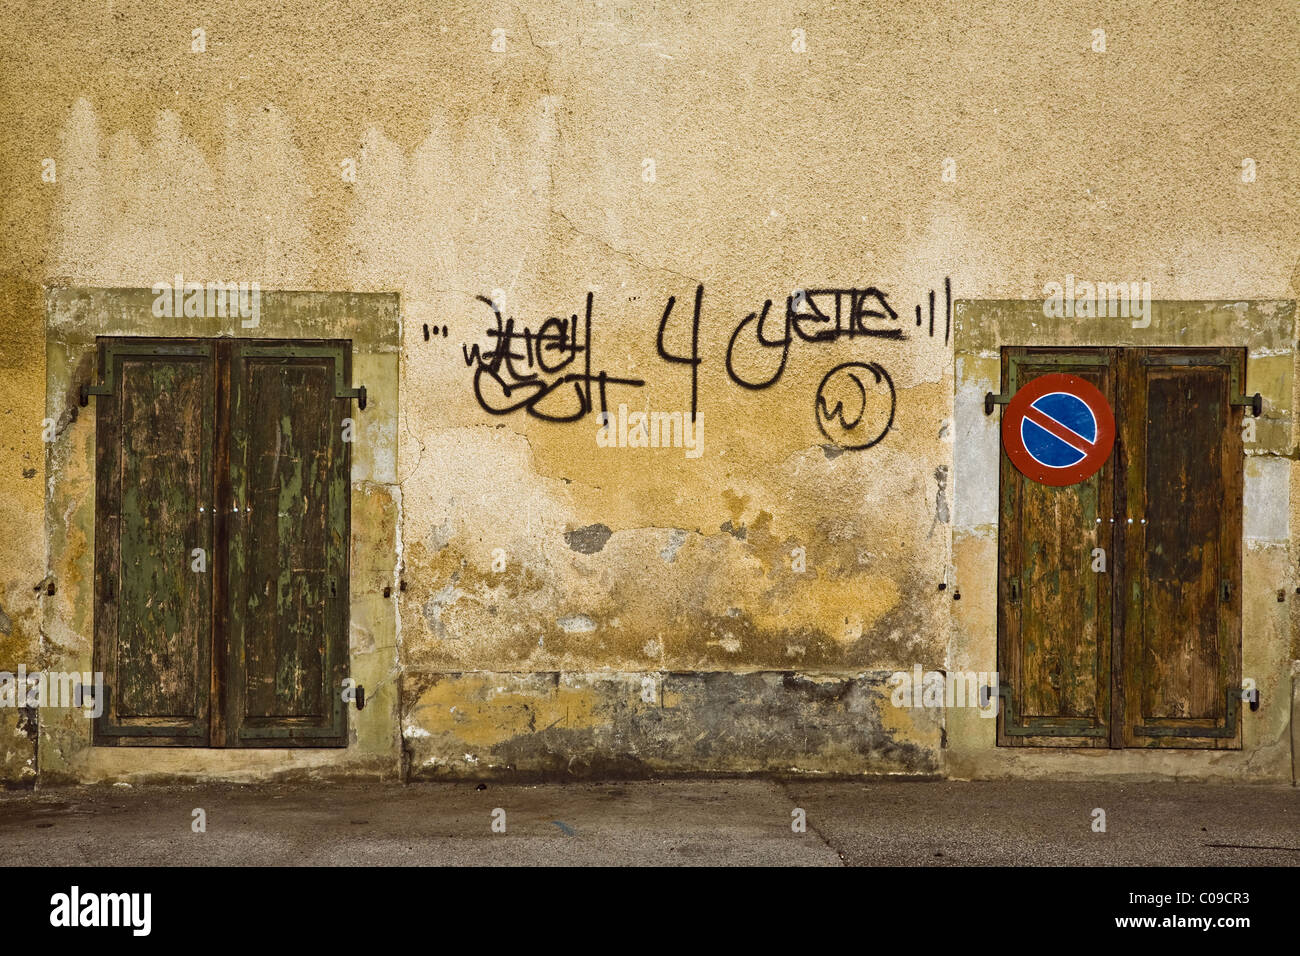 Abstract image of doors and graffiti in Nyon, Switzerland - Stock Image